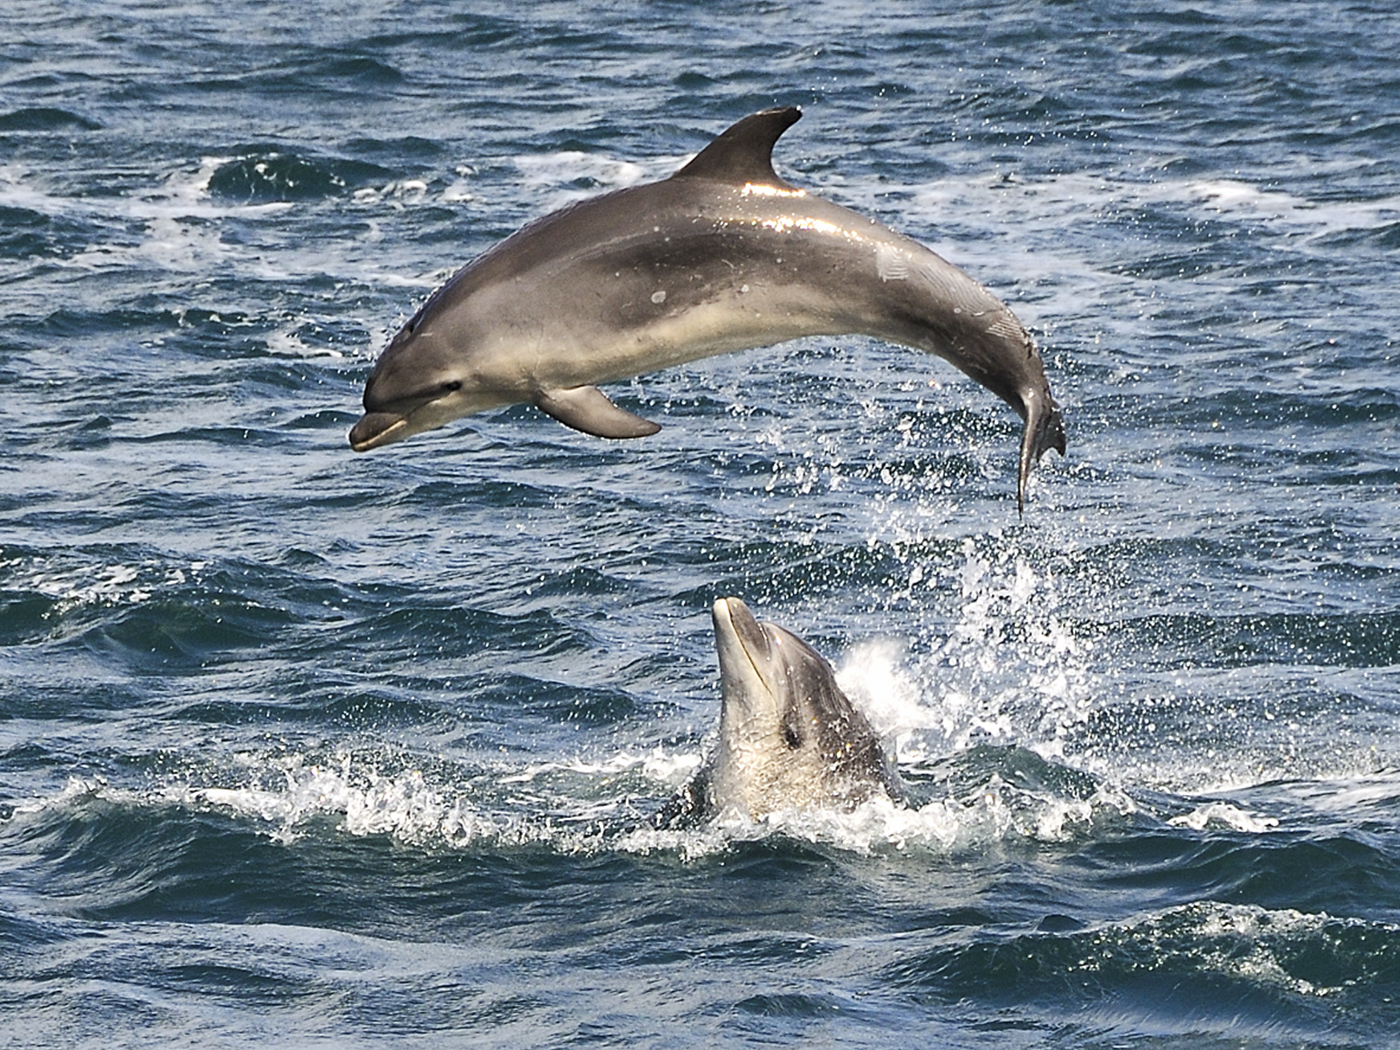 'Dolphins in Queen Charlotte Sound' by Mike Brown